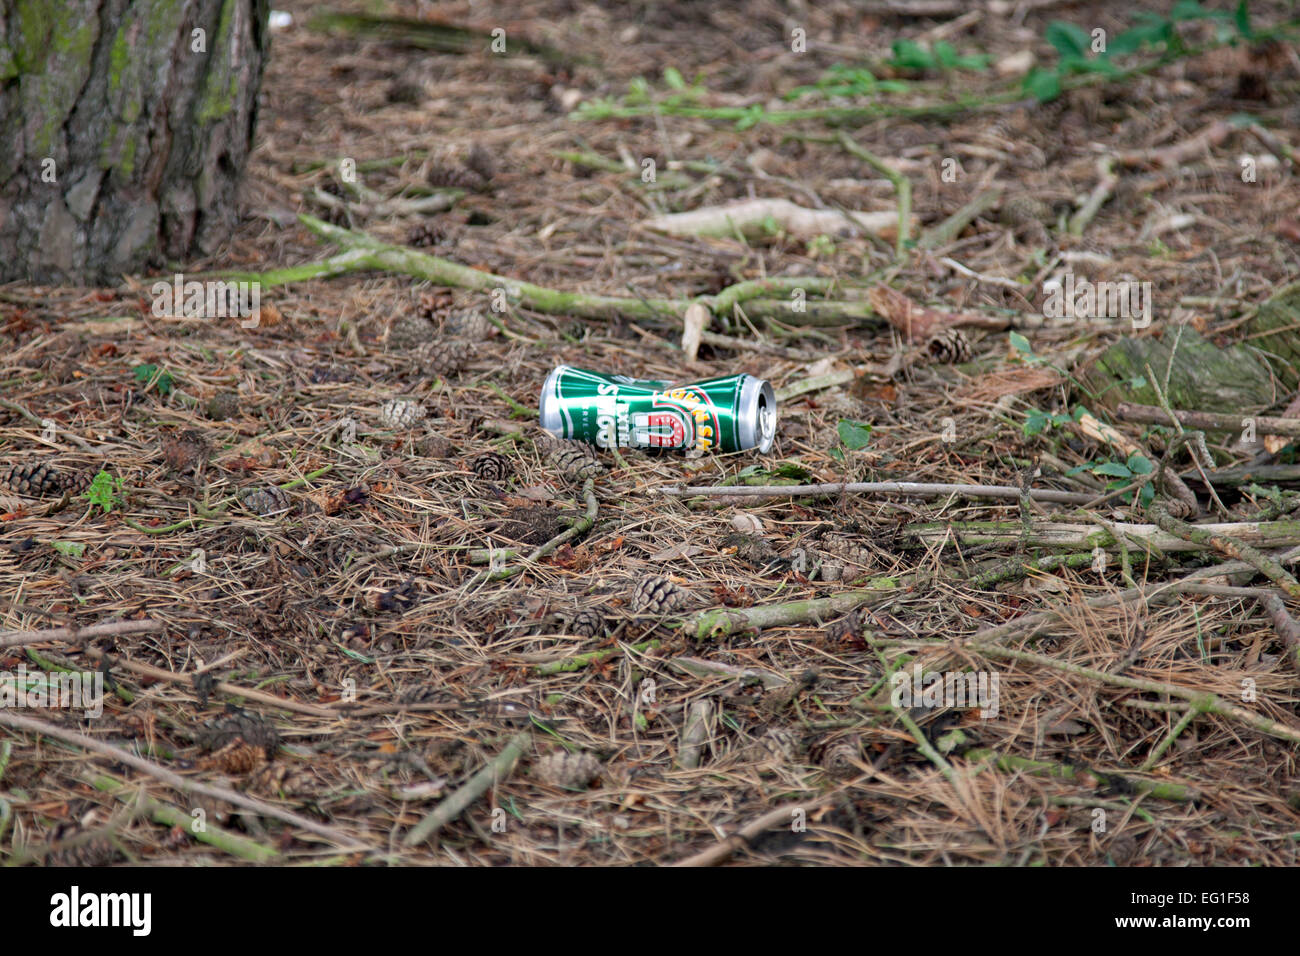 Beer can thrown away in woodland - somebody else's problem - Stock Image